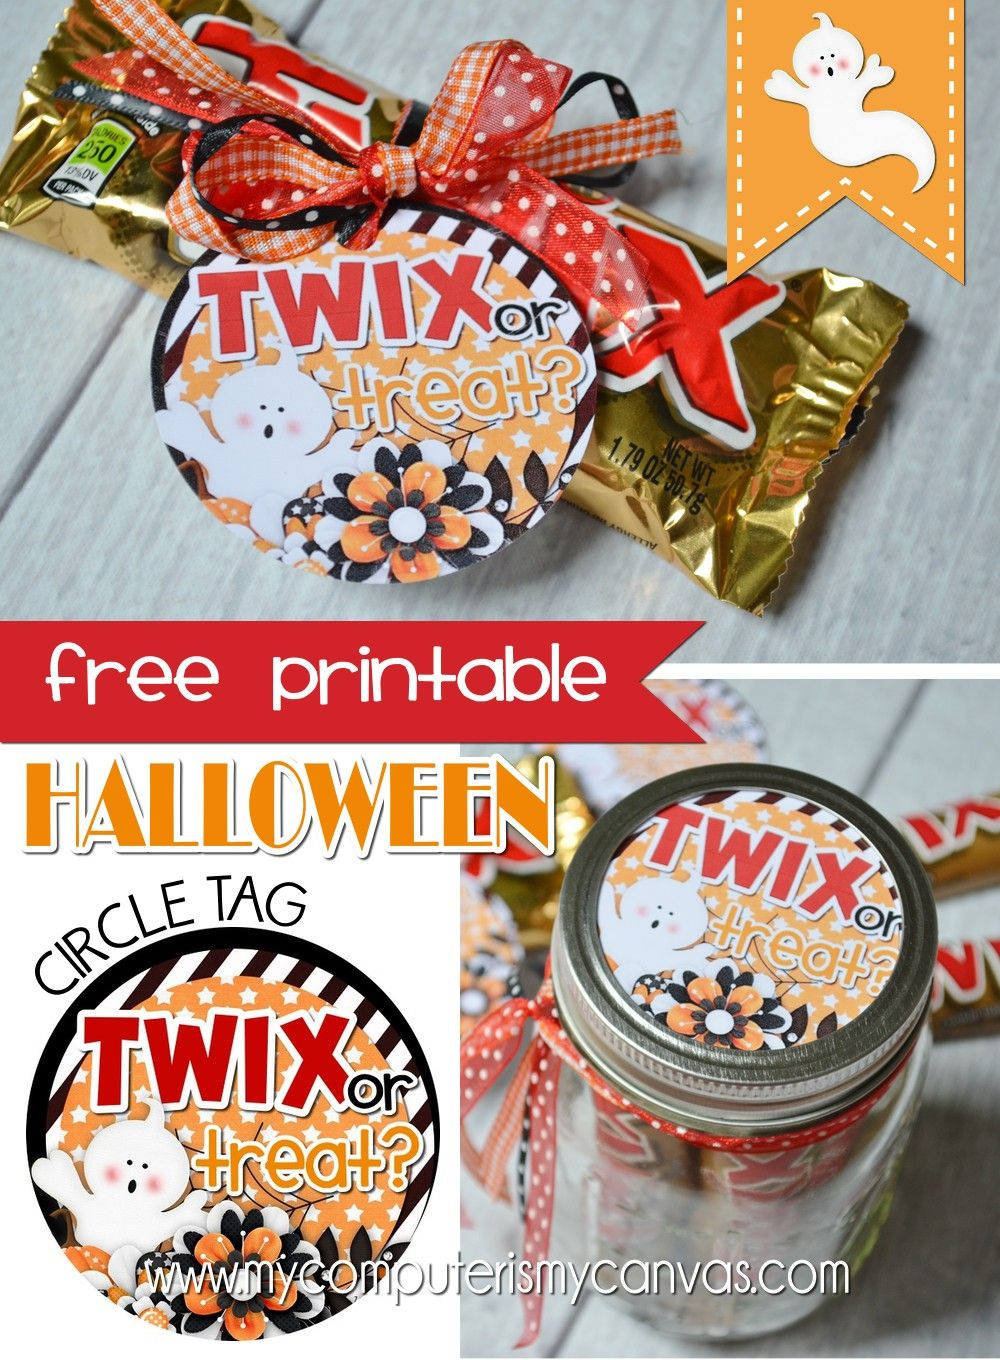 Free Printable Halloween Tag/Favor - Twix or Treat! Can be used as ...